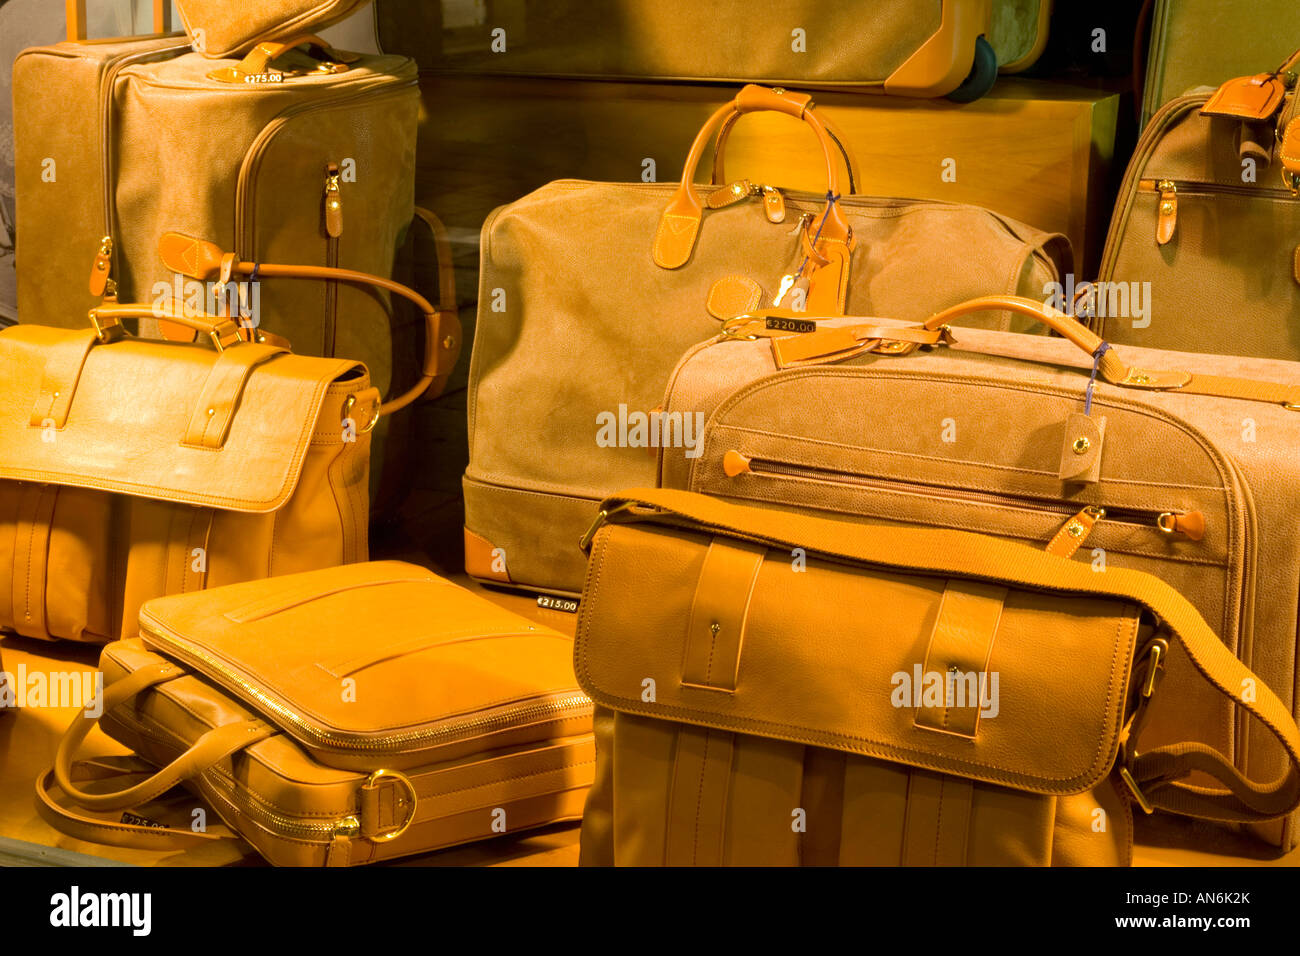 Leather Shop Verona Veneto Italy Leather Bags On Display In Upmarket Shop